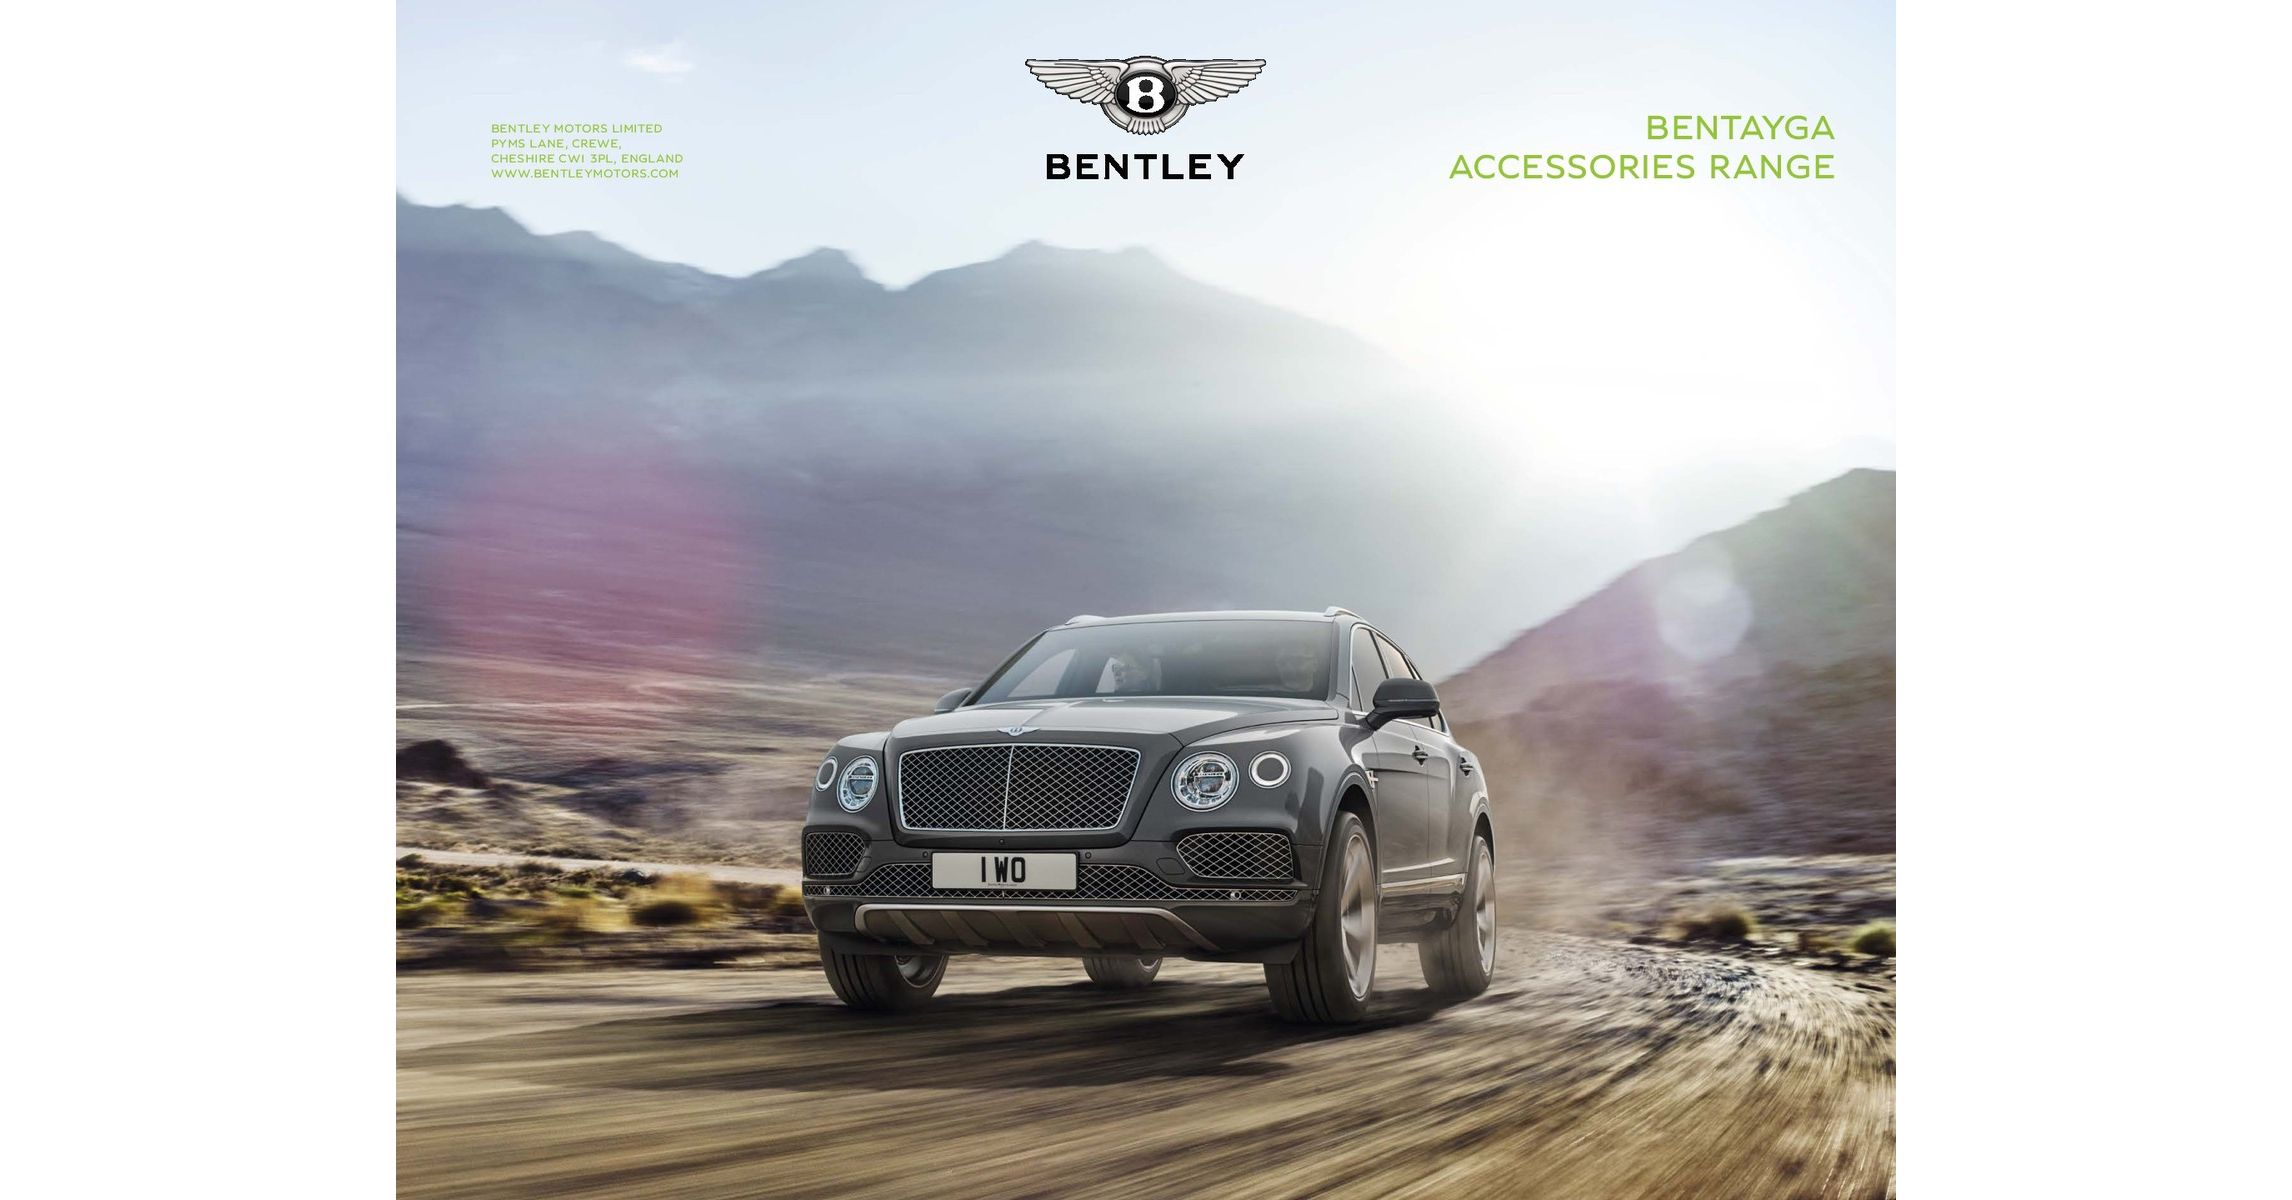 marketing plan of bentley motors limited Marketing plan of bentley motors limited 1 executive summary 2 company description bentley motors limited is a british manufacturer of automobiles, founded on the 18th of january 1919 by walter own bentley.